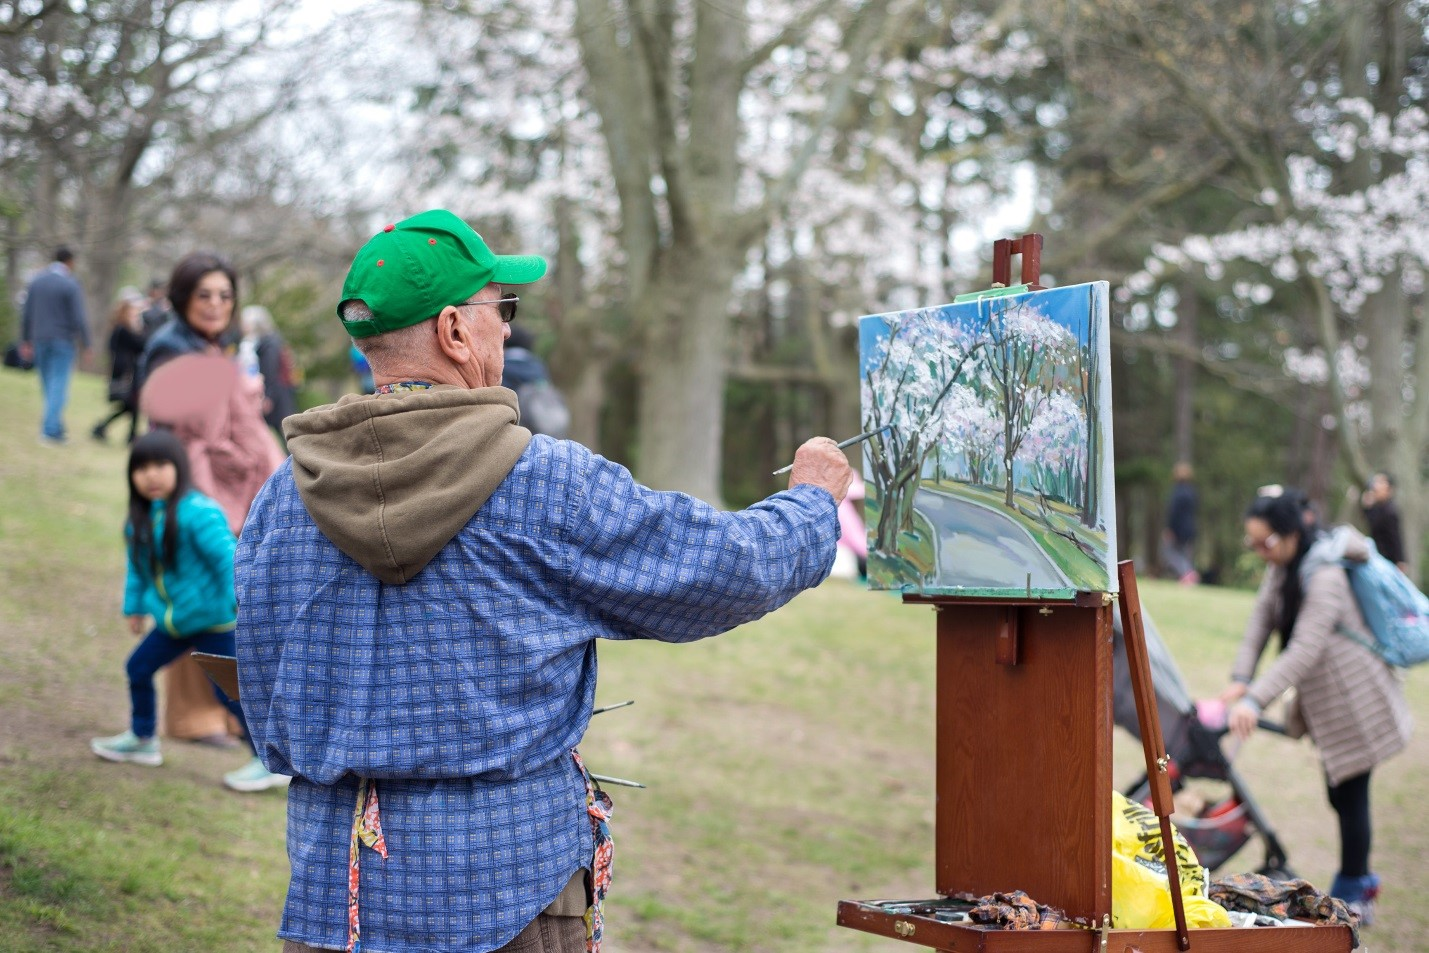 A man is painting the blossoming cherry trees on a canvas in a Toronto park. He is surrounded by people walking or peeking at what he is doing.